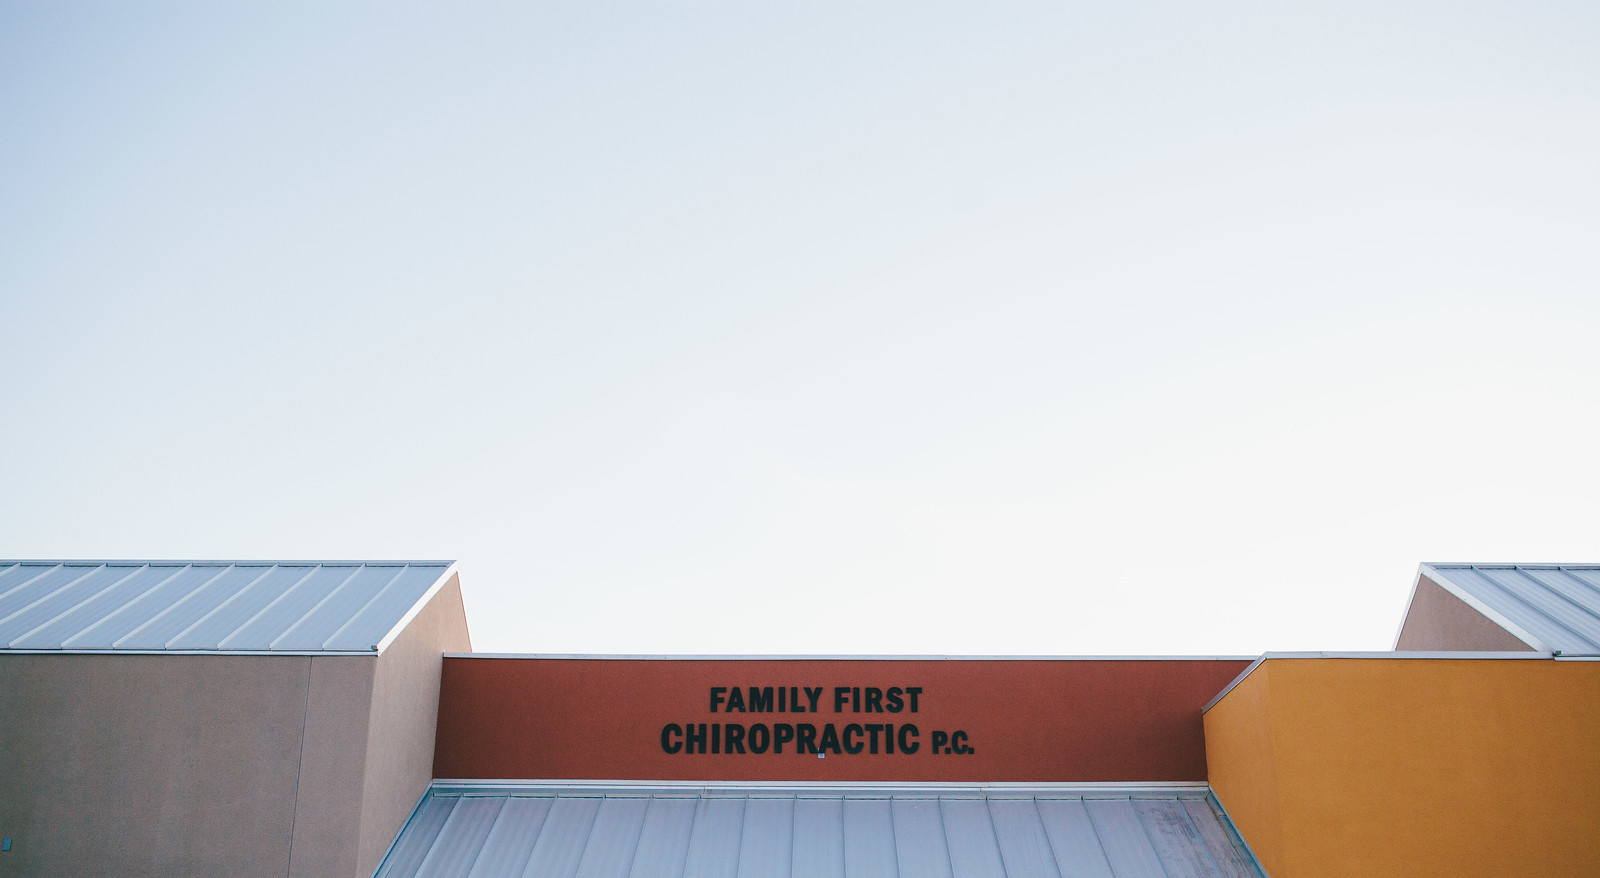 FAMILY FIRST CHIROPRACTIC PC